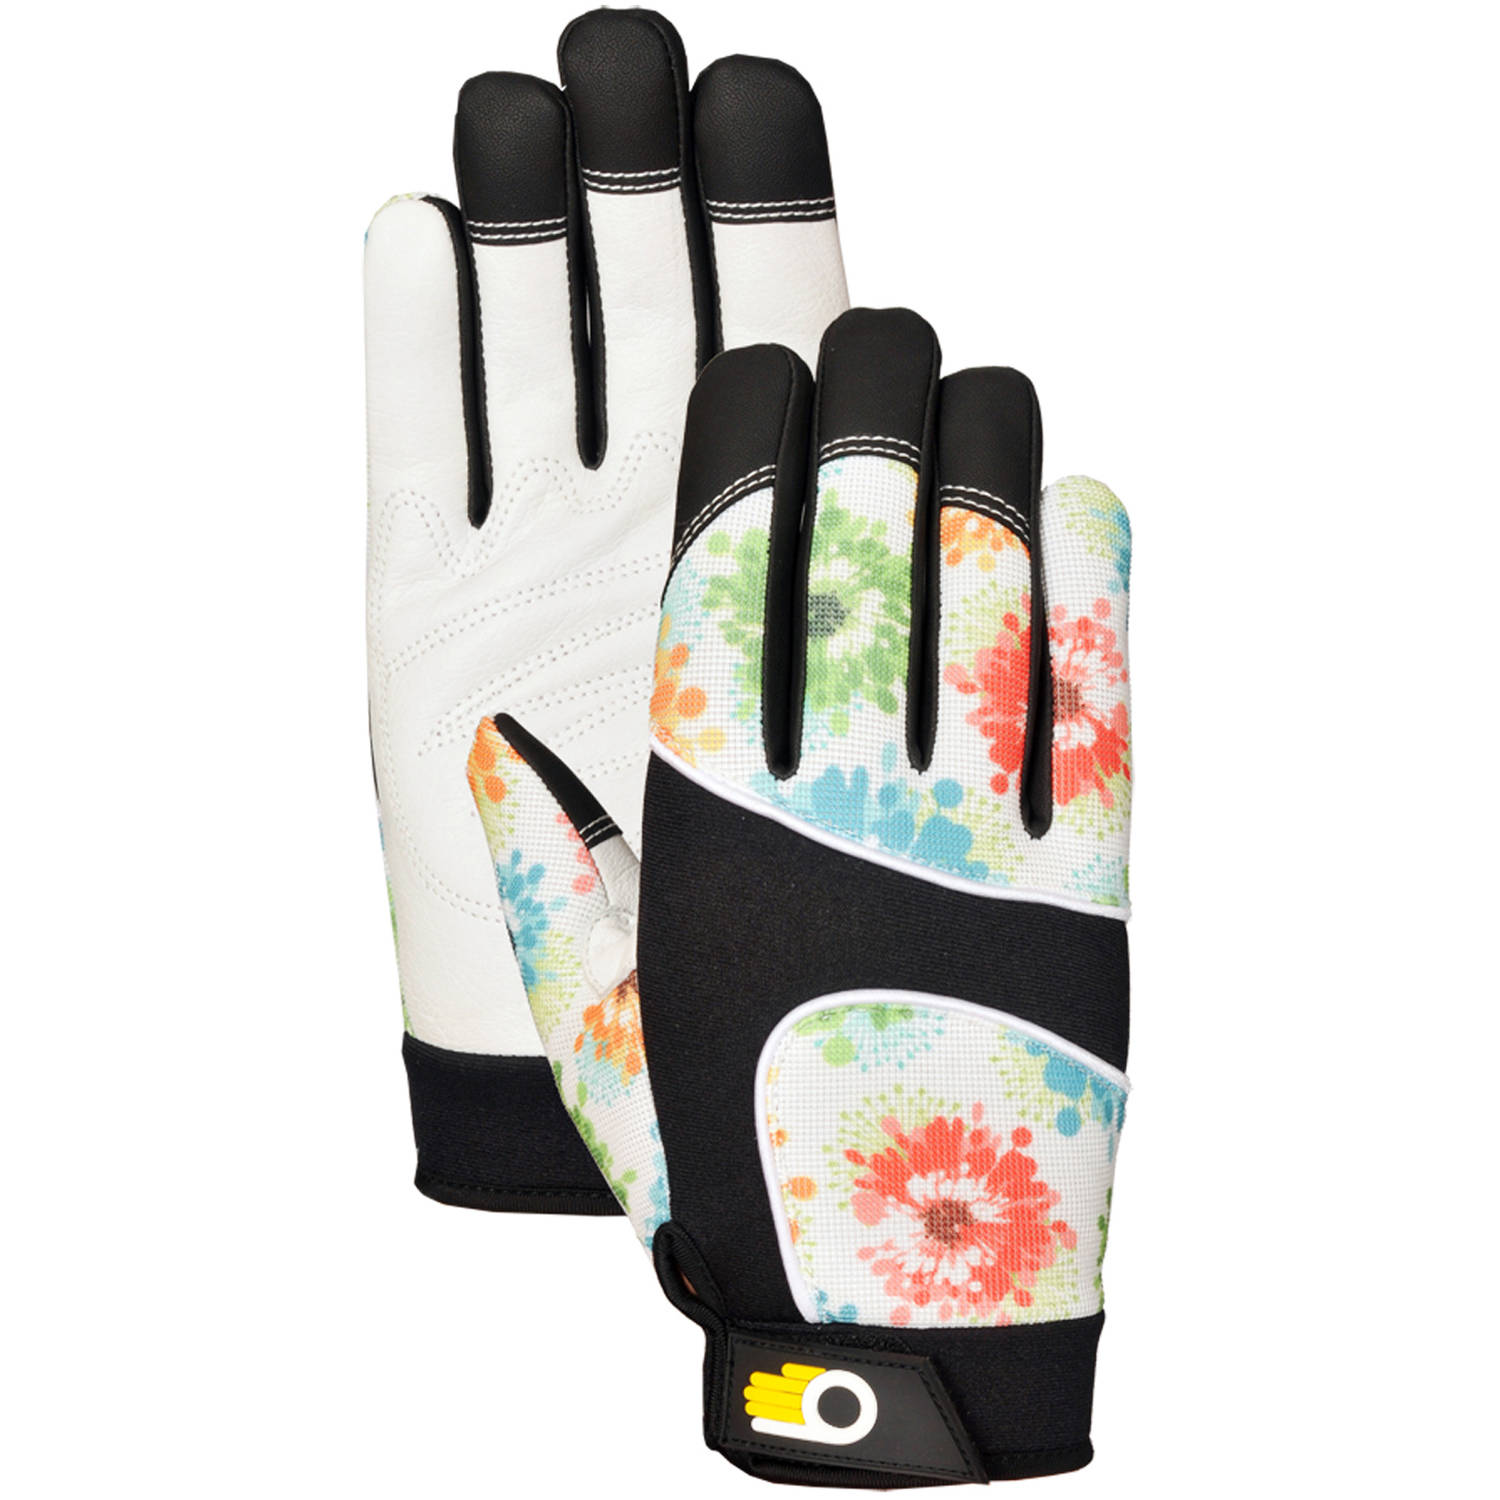 Bellingham Glove C7781L Large Women's Floral Performance Gloves